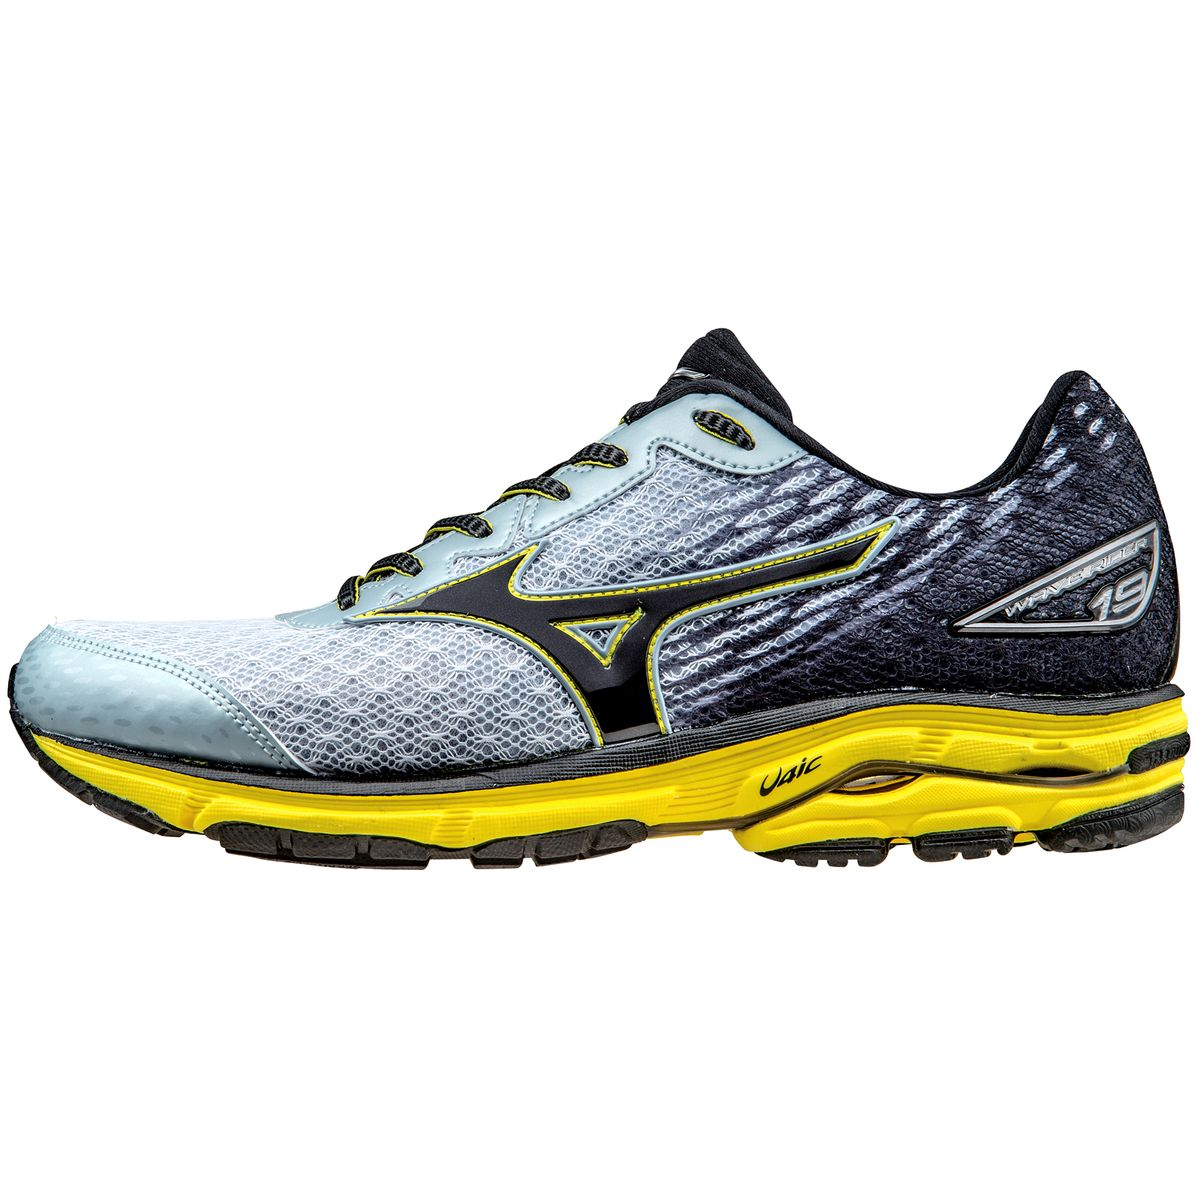 How To Clean Mizuno Running Shoes